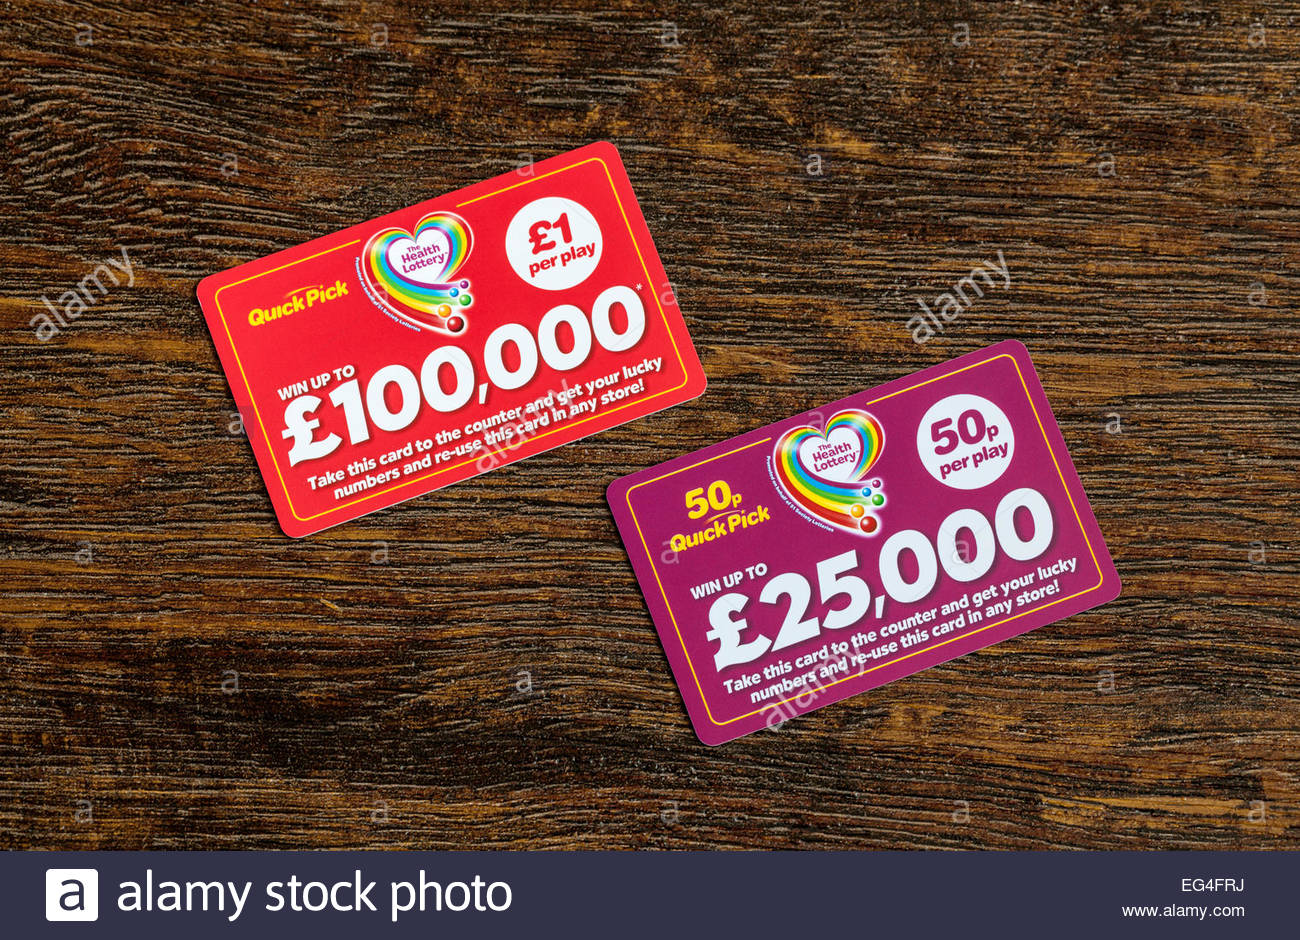 Health lottery 50p quick pick prizes